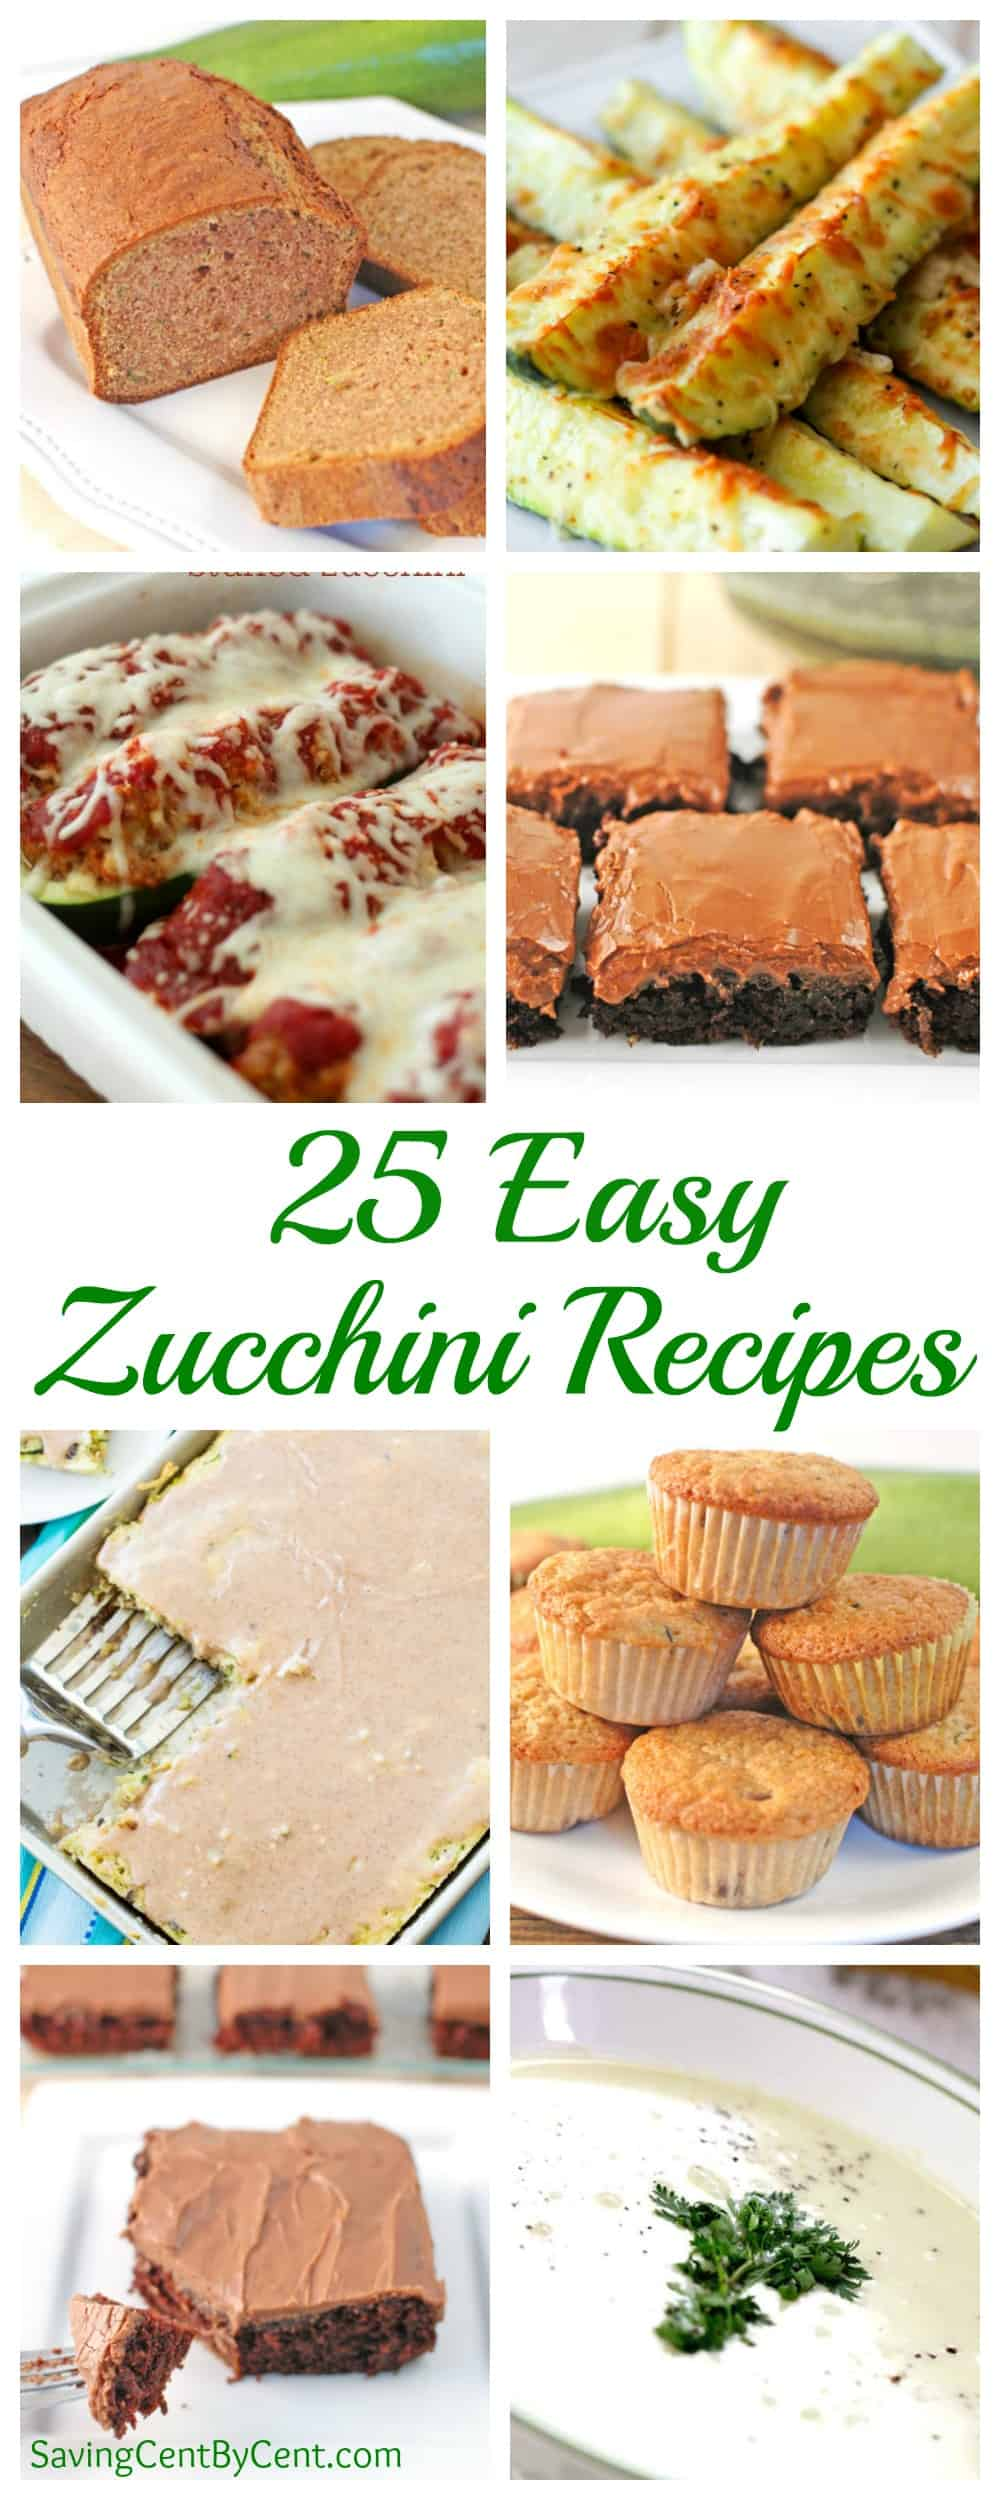 25 Easy Zucchini Recipes